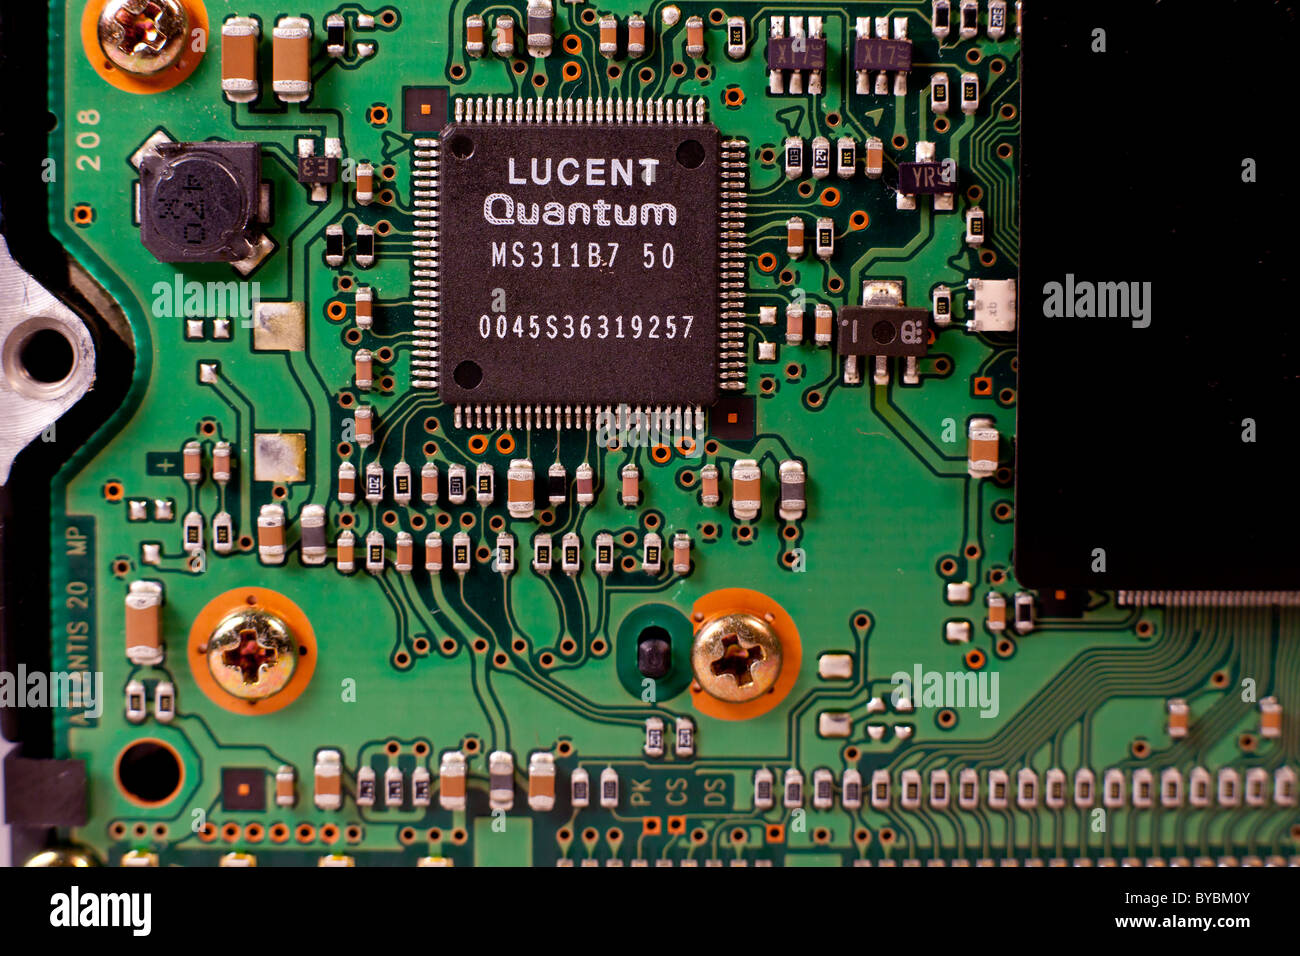 A UDMA hard drive circuit board with a Lucent microchip - Stock Image